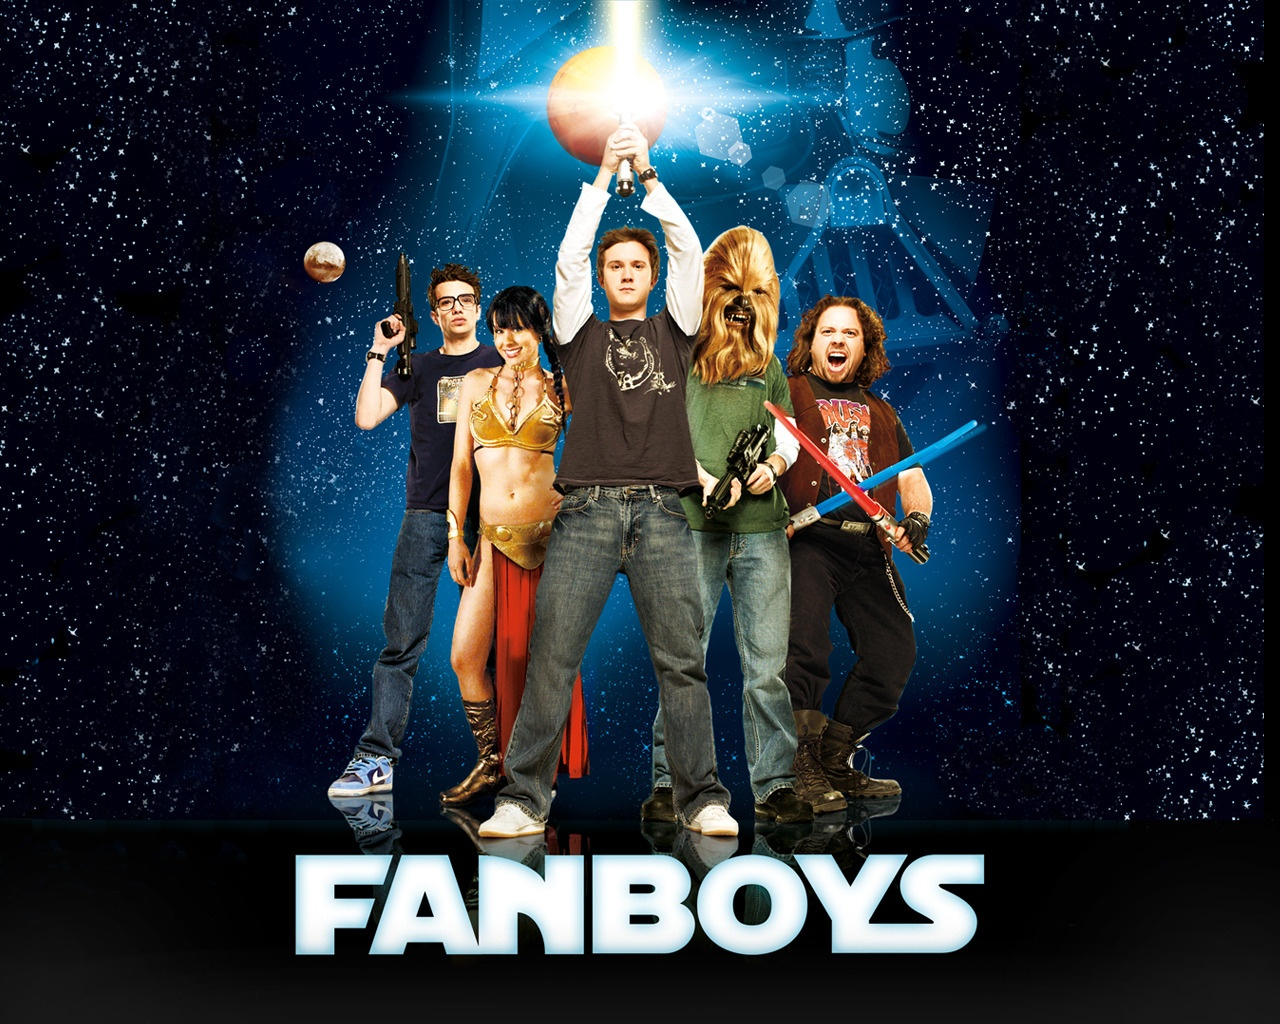 Fanboys: Pros and Cons